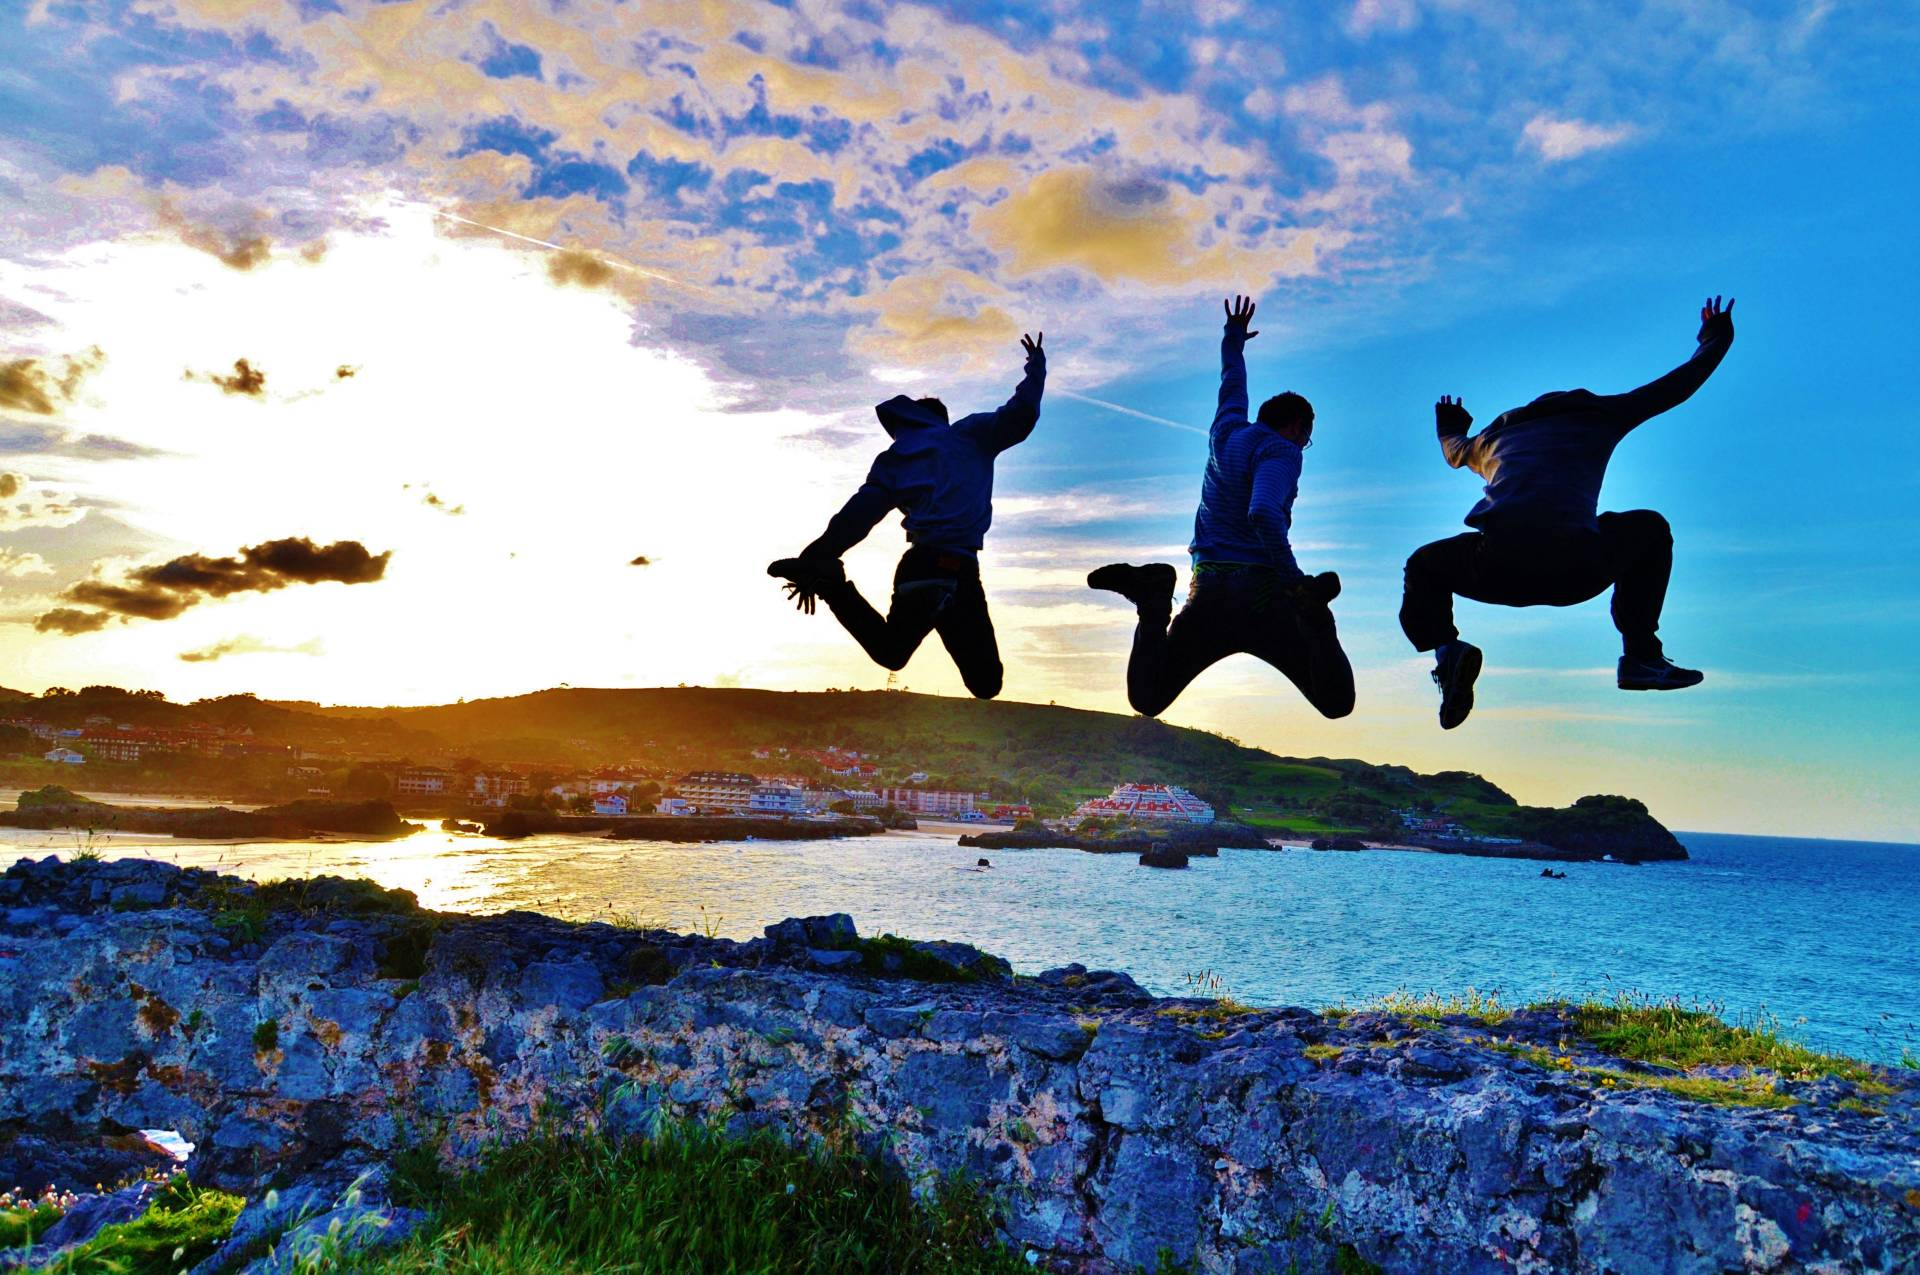 Students jumping during sunset near a lake while travelling abroad